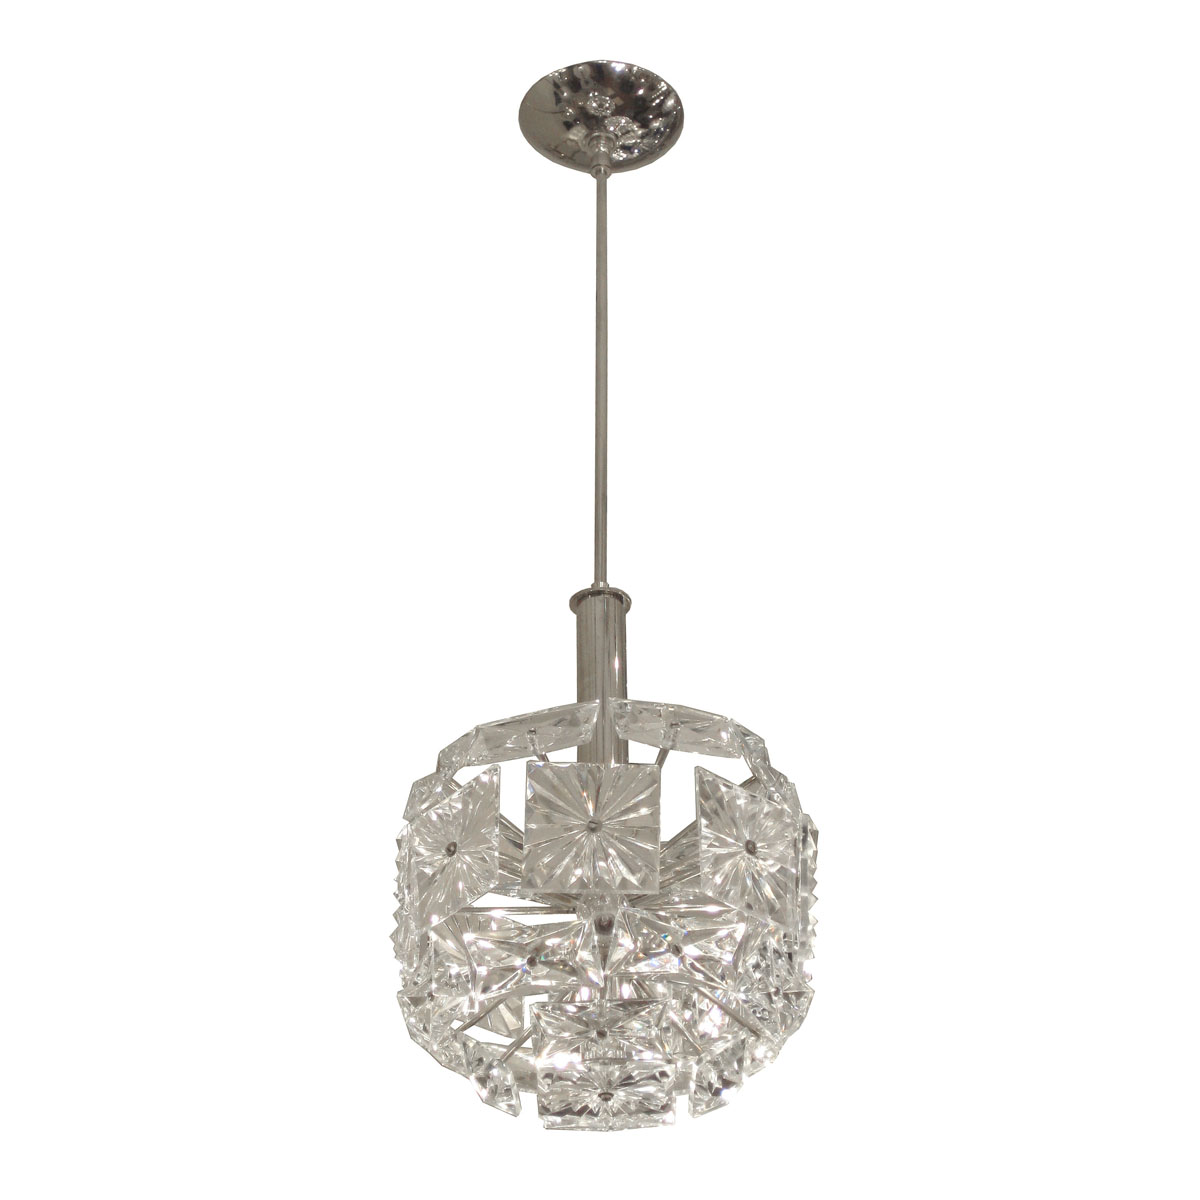 chrome pendant ceiling fixture with rays terminating in